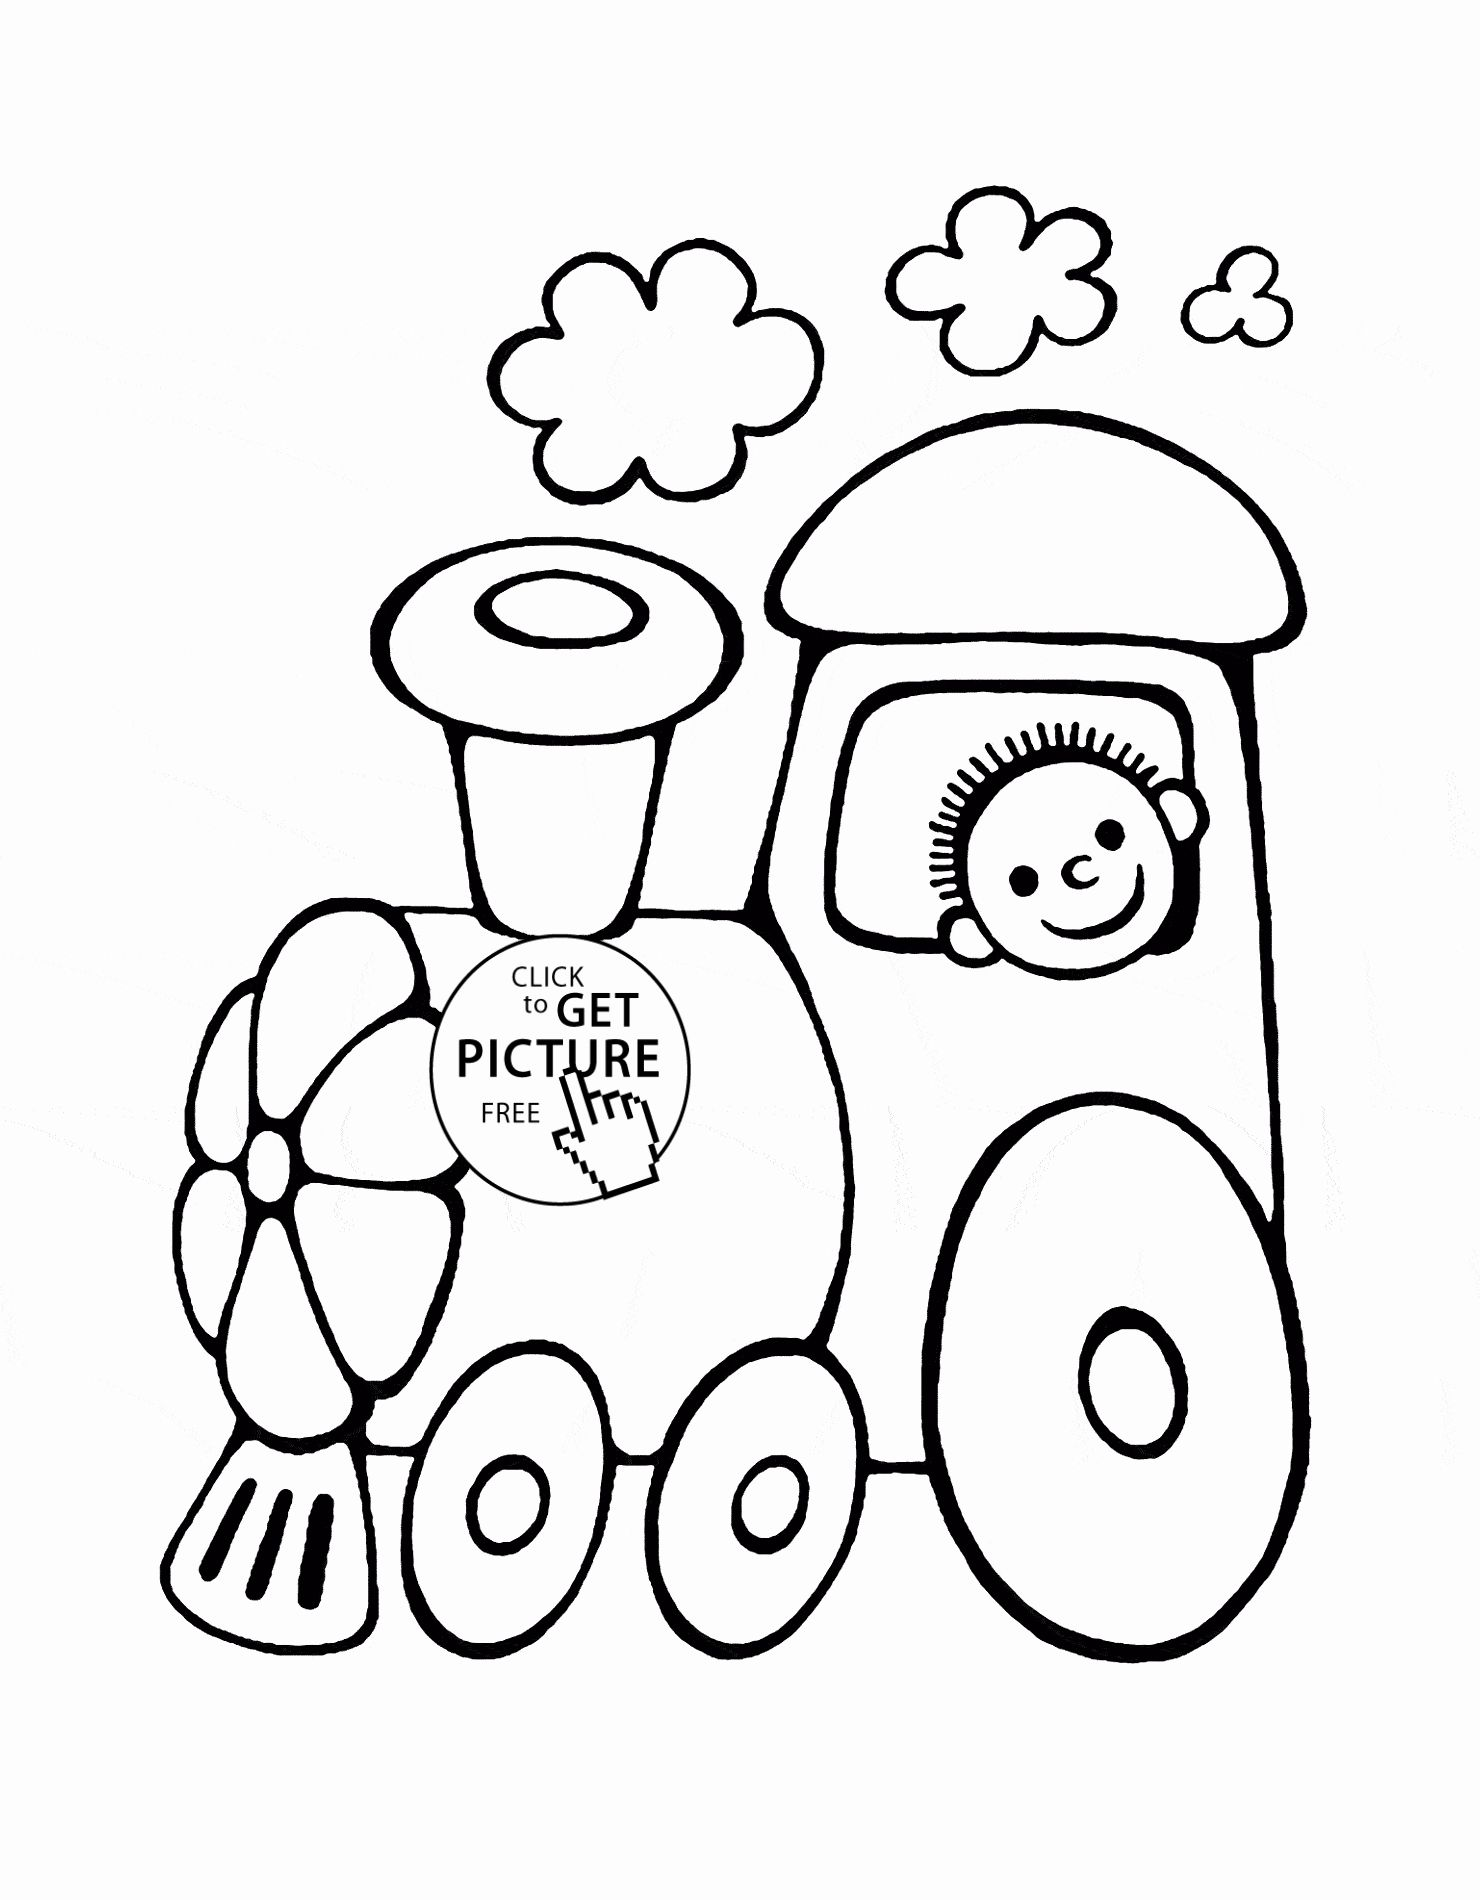 Transportation Coloring Pages For Preschoolers